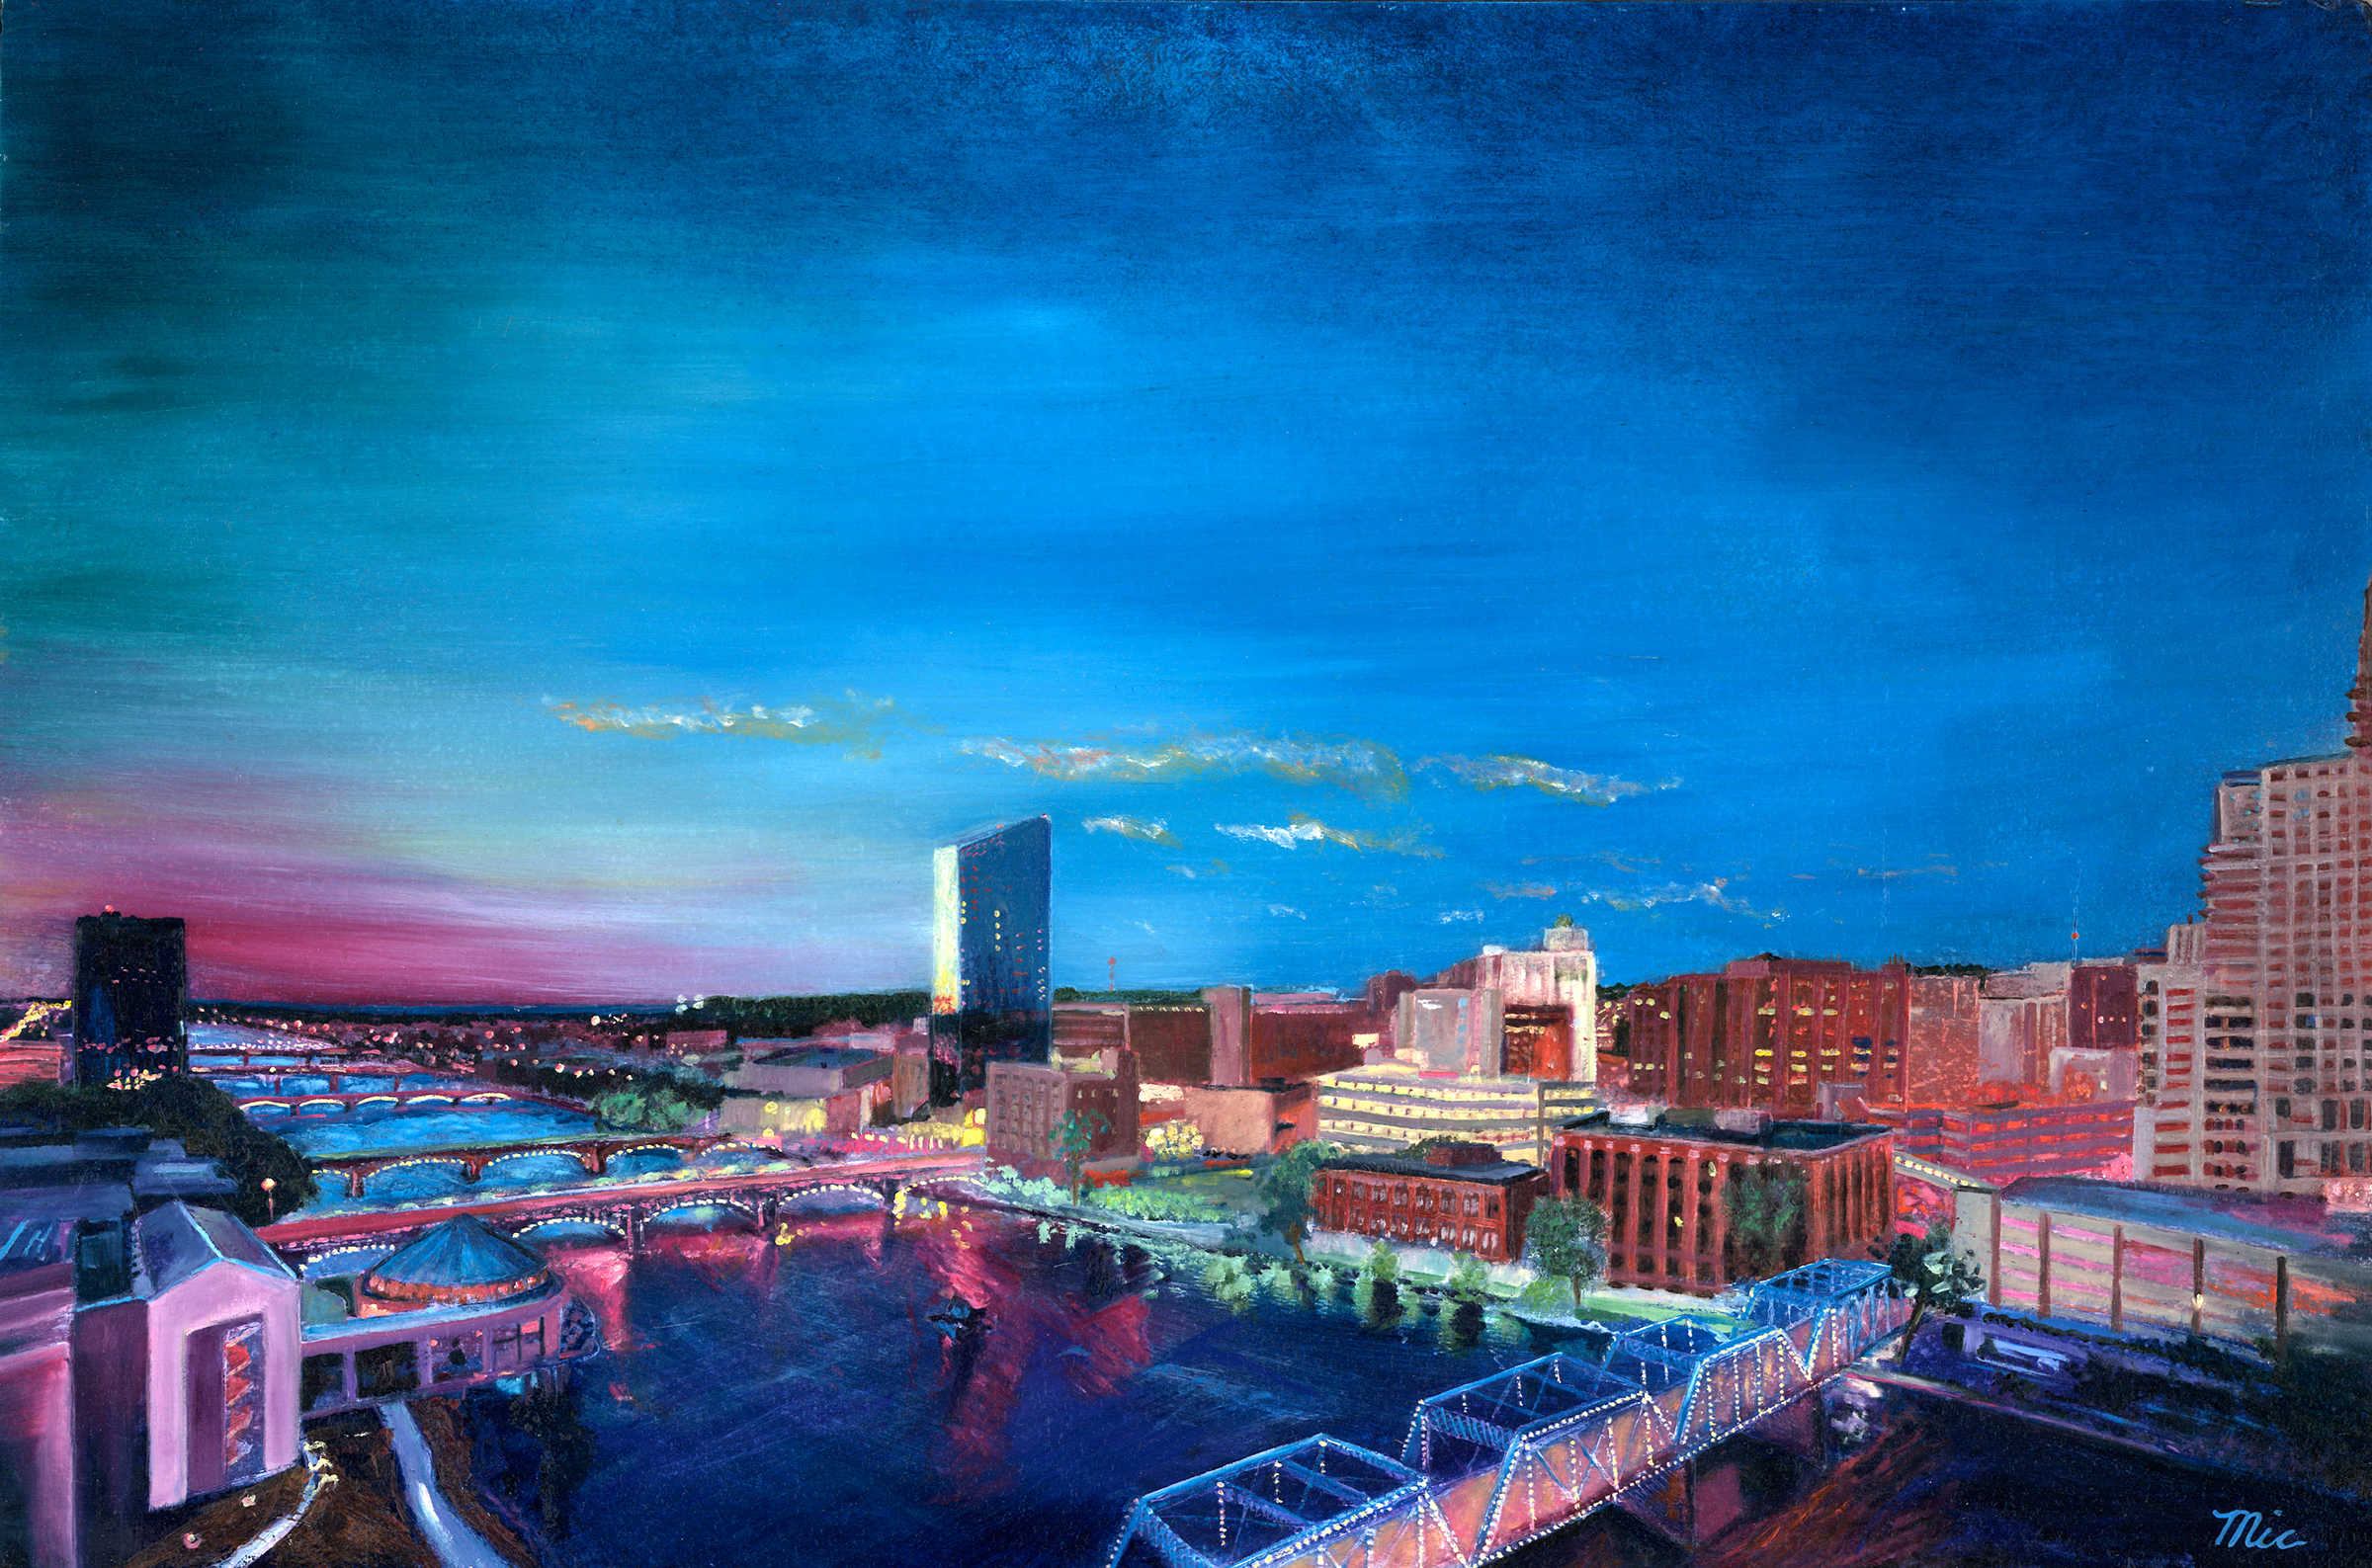 """The Grand River"" Grand Rapids, Michigan - Oil on panel, Private collection Jim Lahnala Rick Wright.Giclee Limited Edition and canvas prints are available. Please visit the prints gallery."